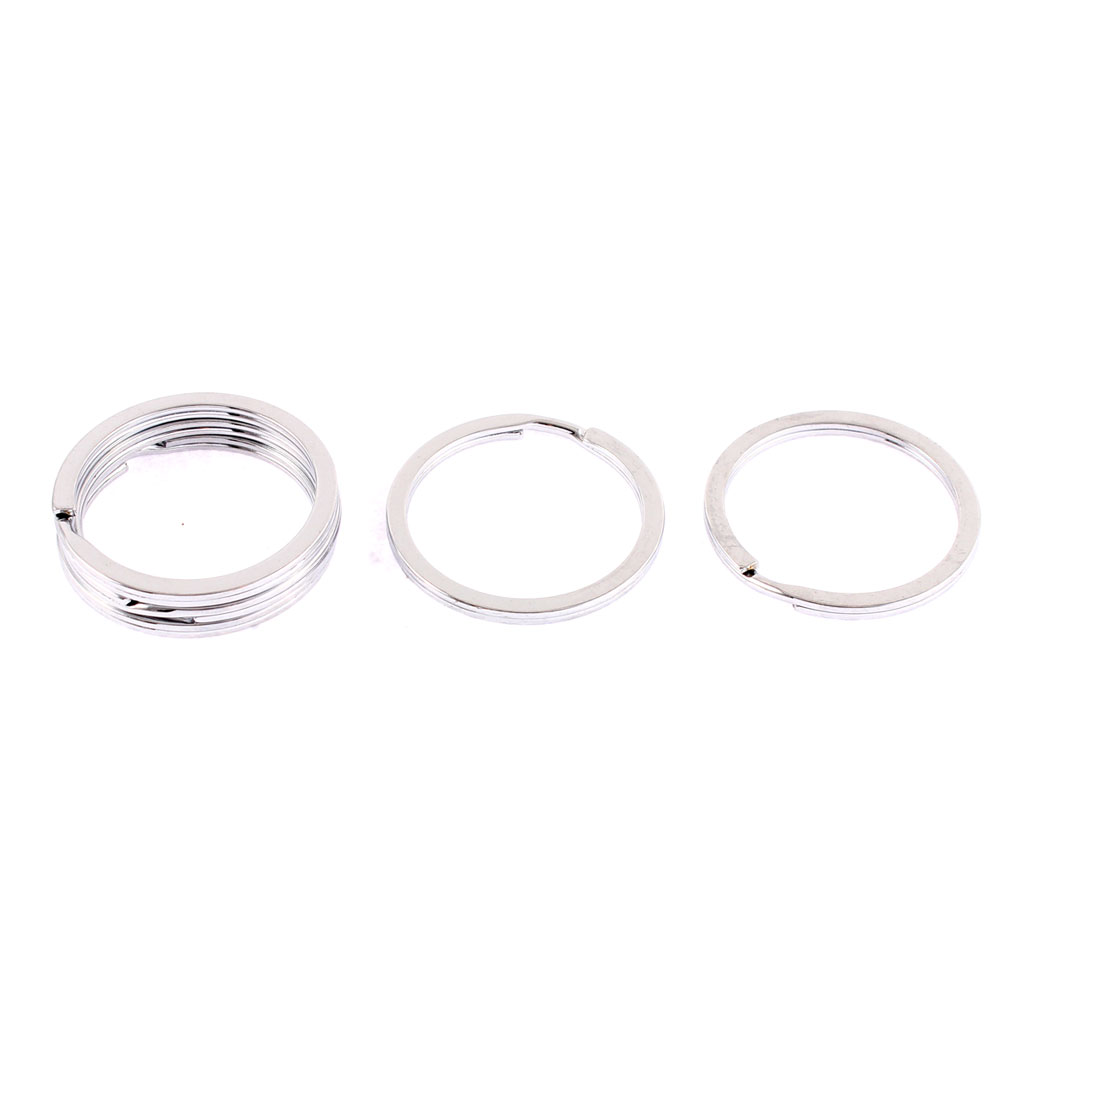 5 Pcs Metal Round Dual Loop Split Key Ring Keychain 35mm Outside Dia